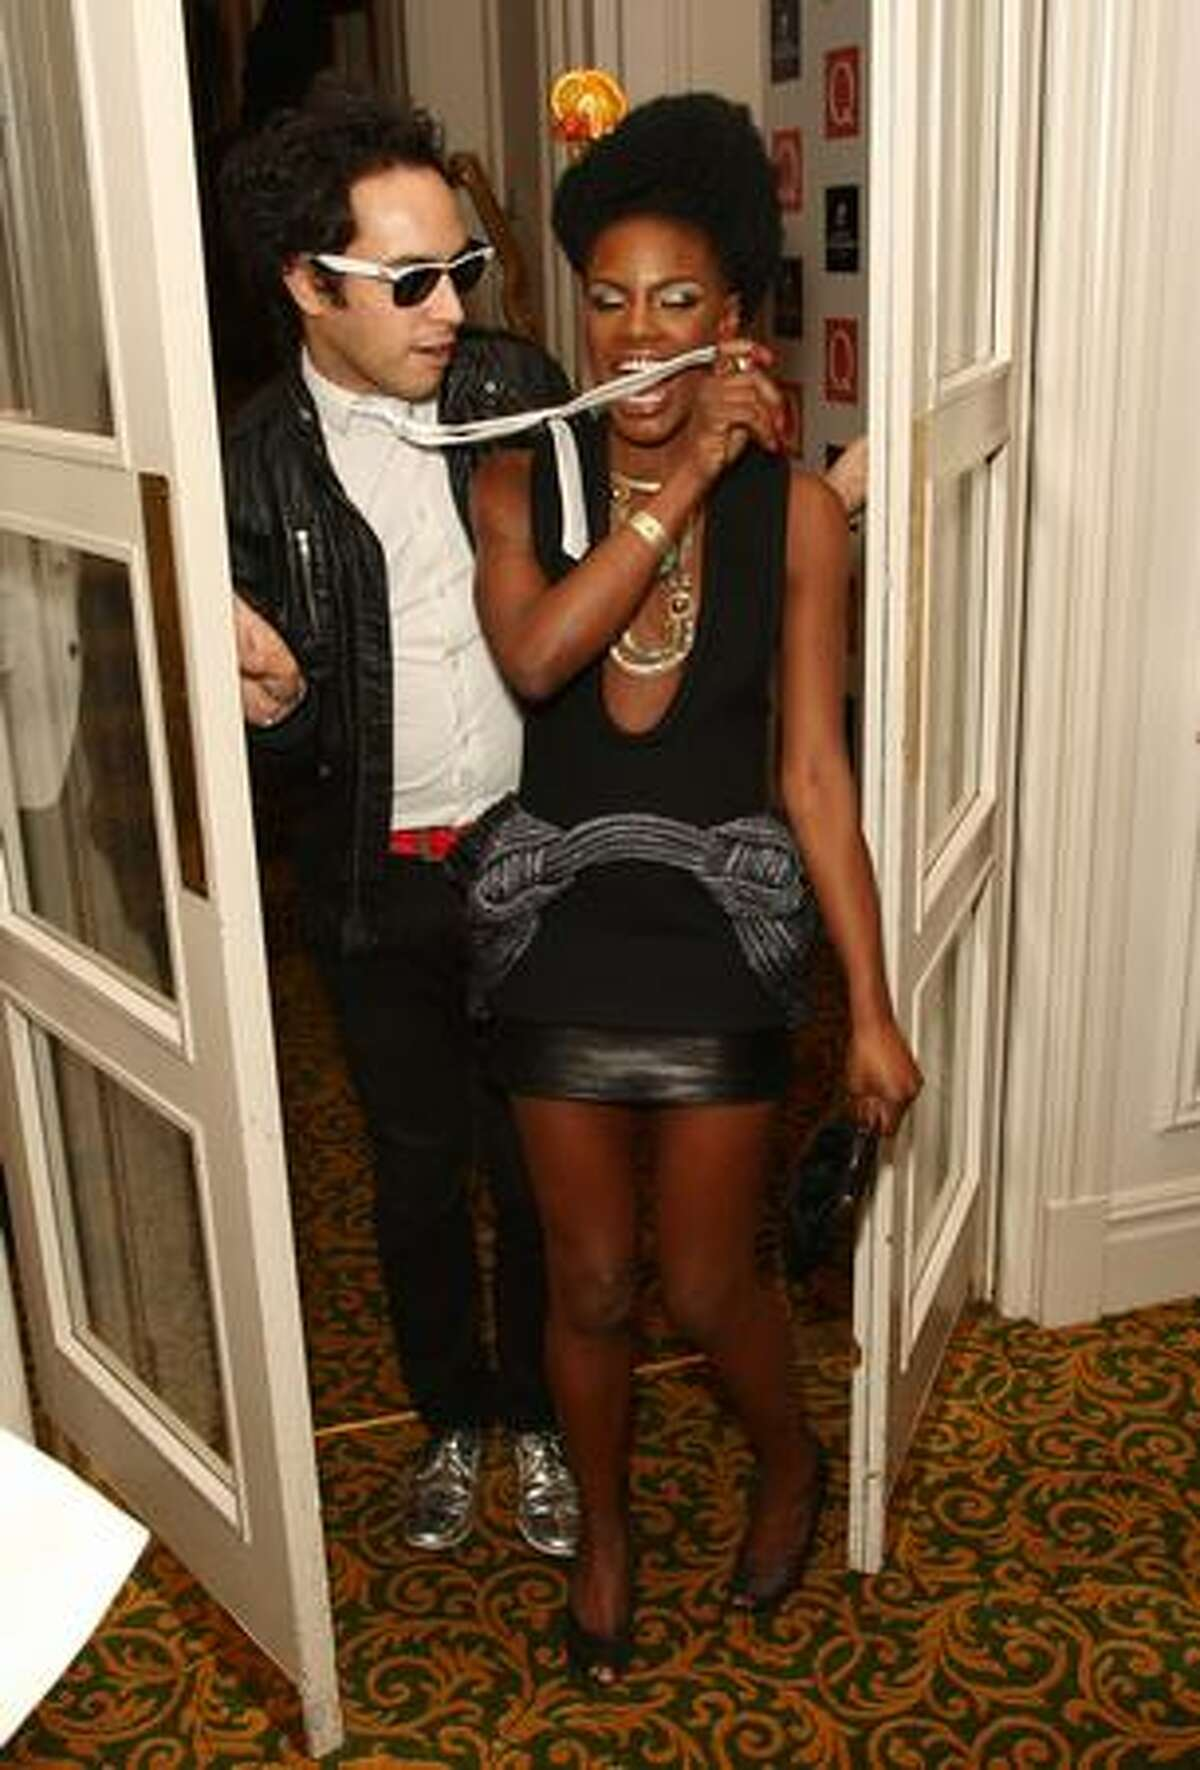 Shingai Shoniwa and Dan Smith of The Noisettes attend the 2009 Q Awards held at the Grosvenor House Hotel in London, England.